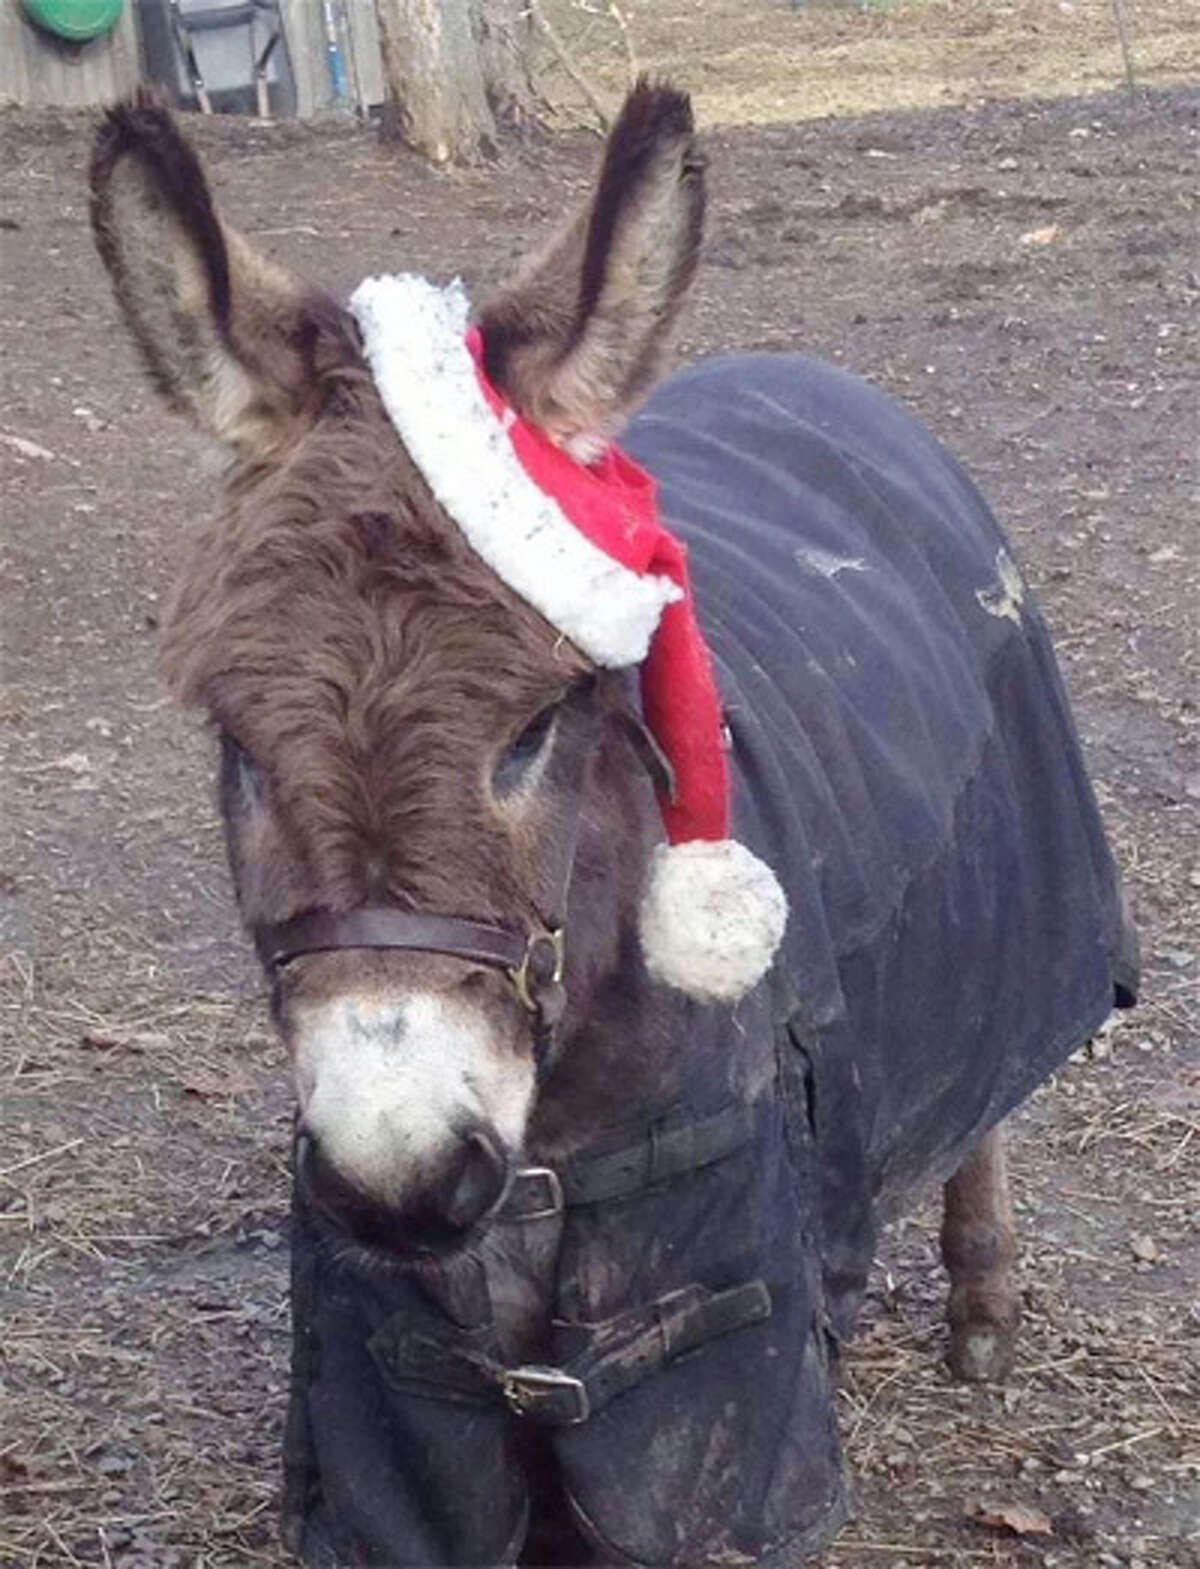 This donkey on Maple Avenue was waiting to say